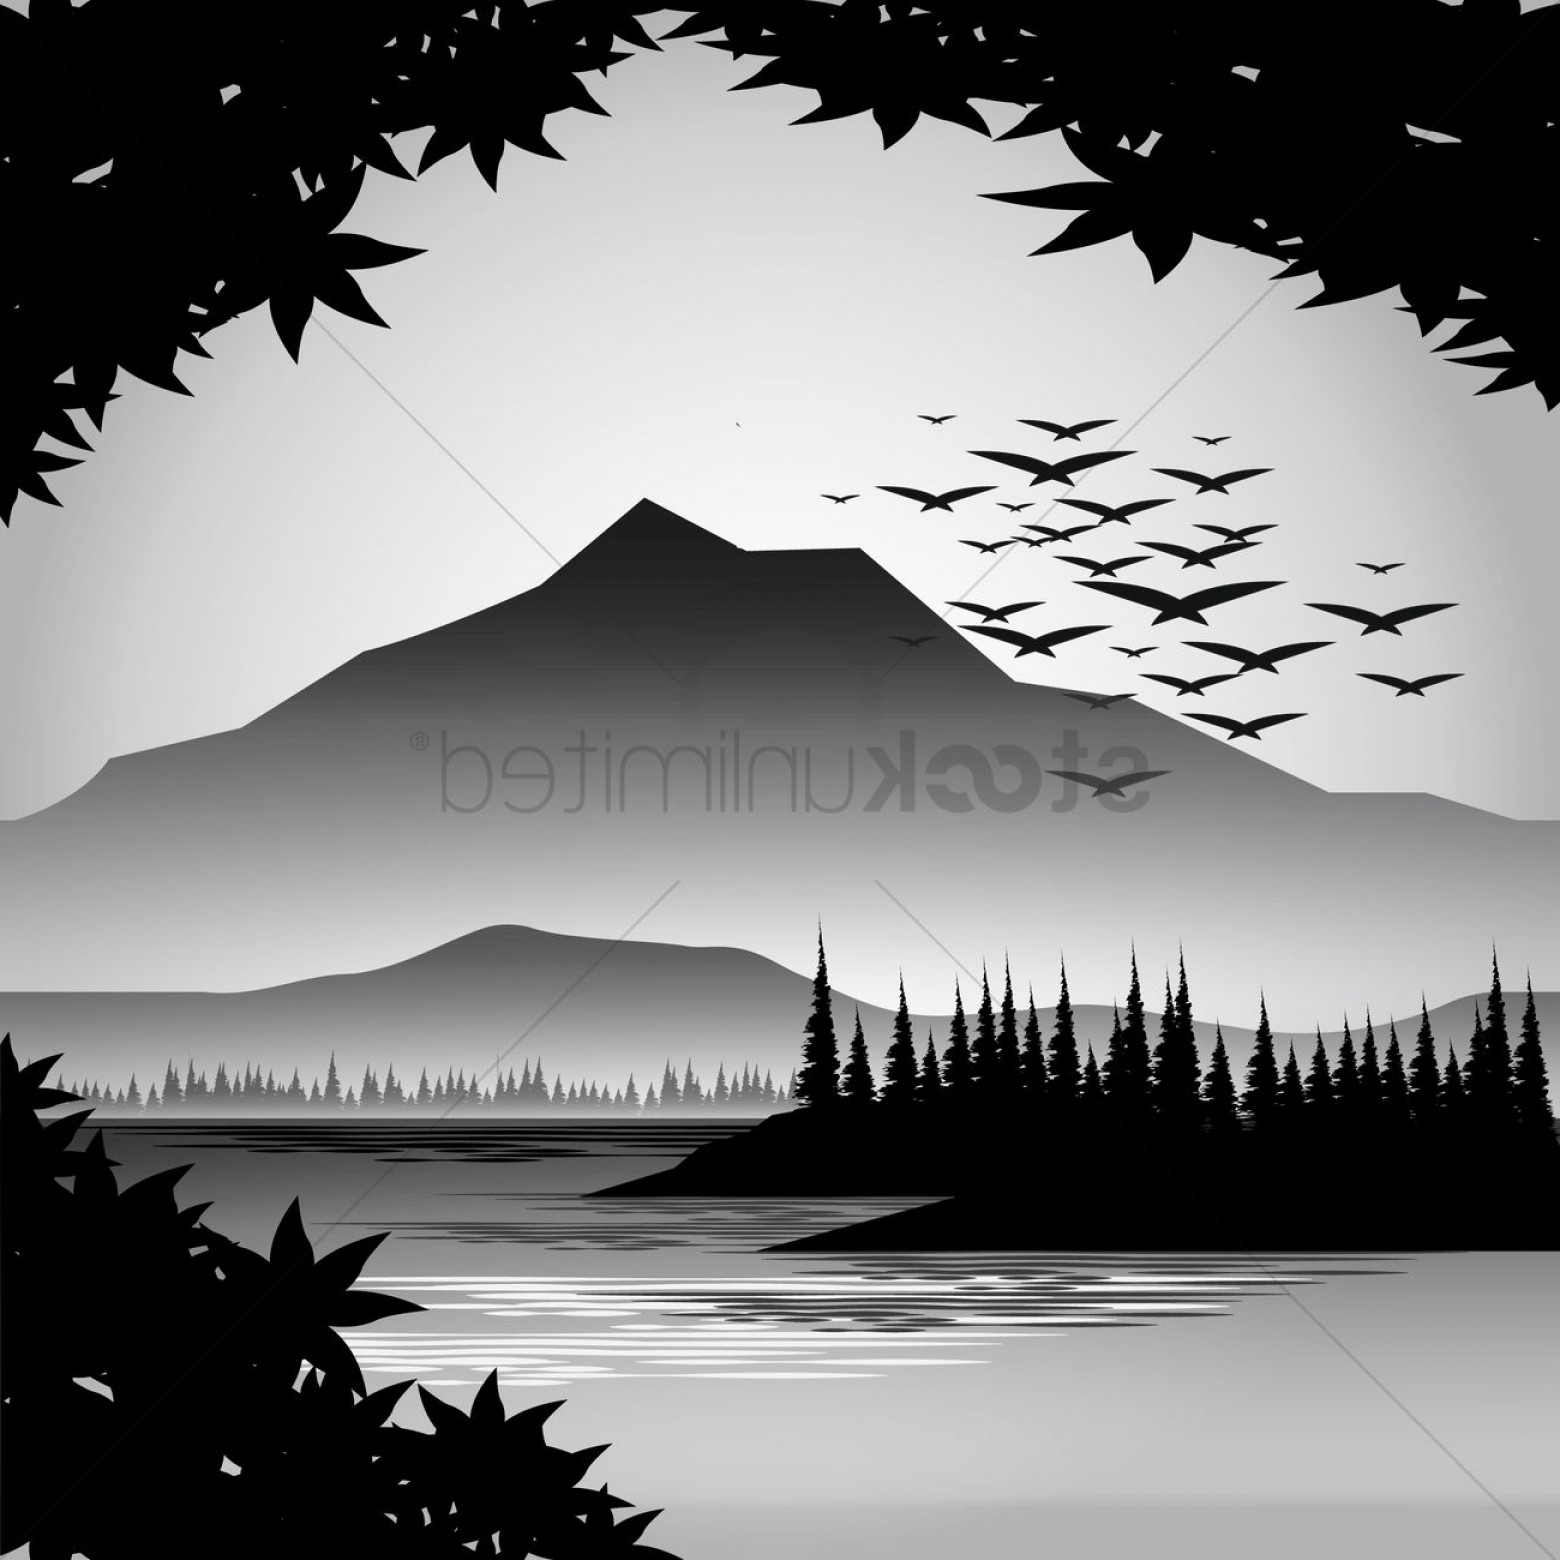 River Silhouette Vector Art: Silhouette Of River And Mountain View